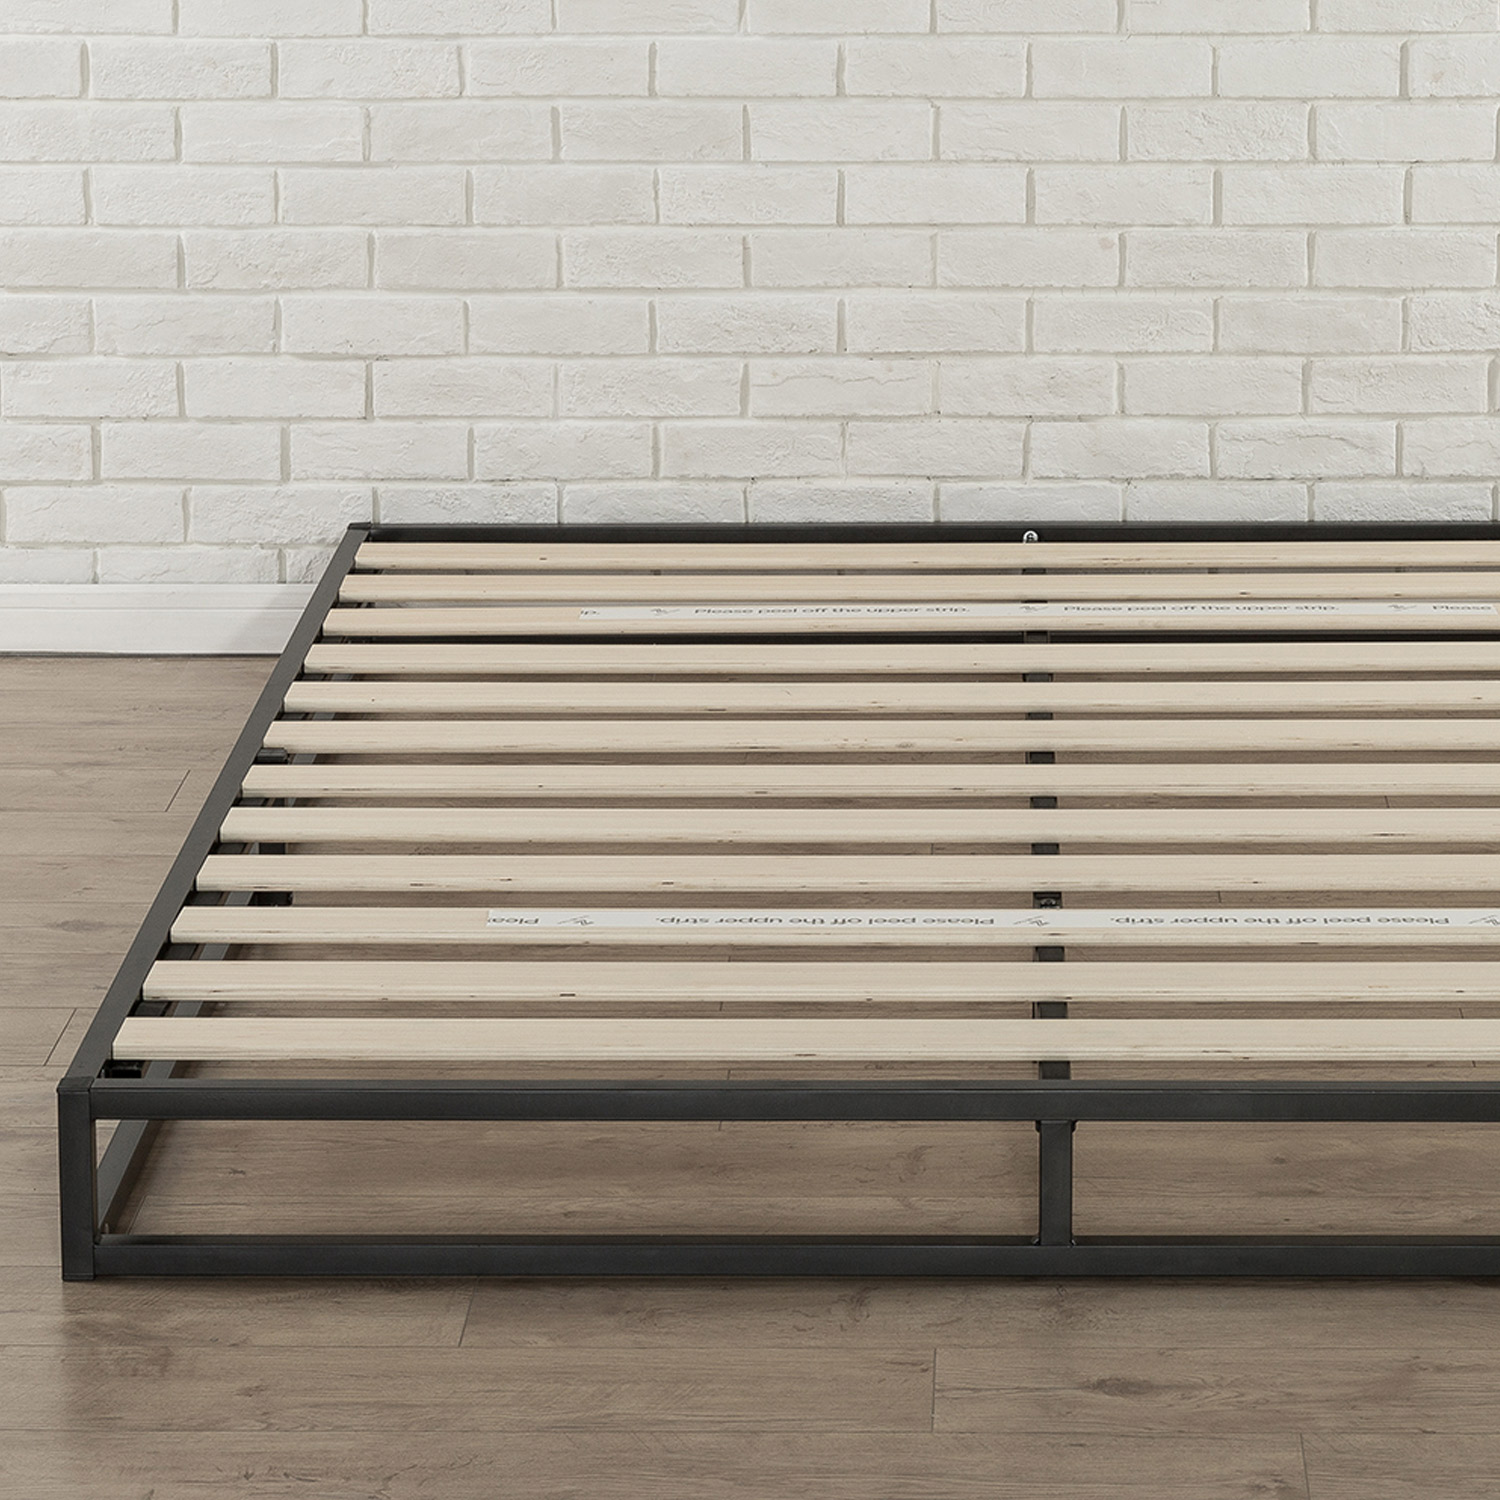 Zinus-Joesph-SINGLE-DOUBLE-QUEEN-KING-Metal-Low-Bed-Base-Mattress-Frame-Timber thumbnail 23